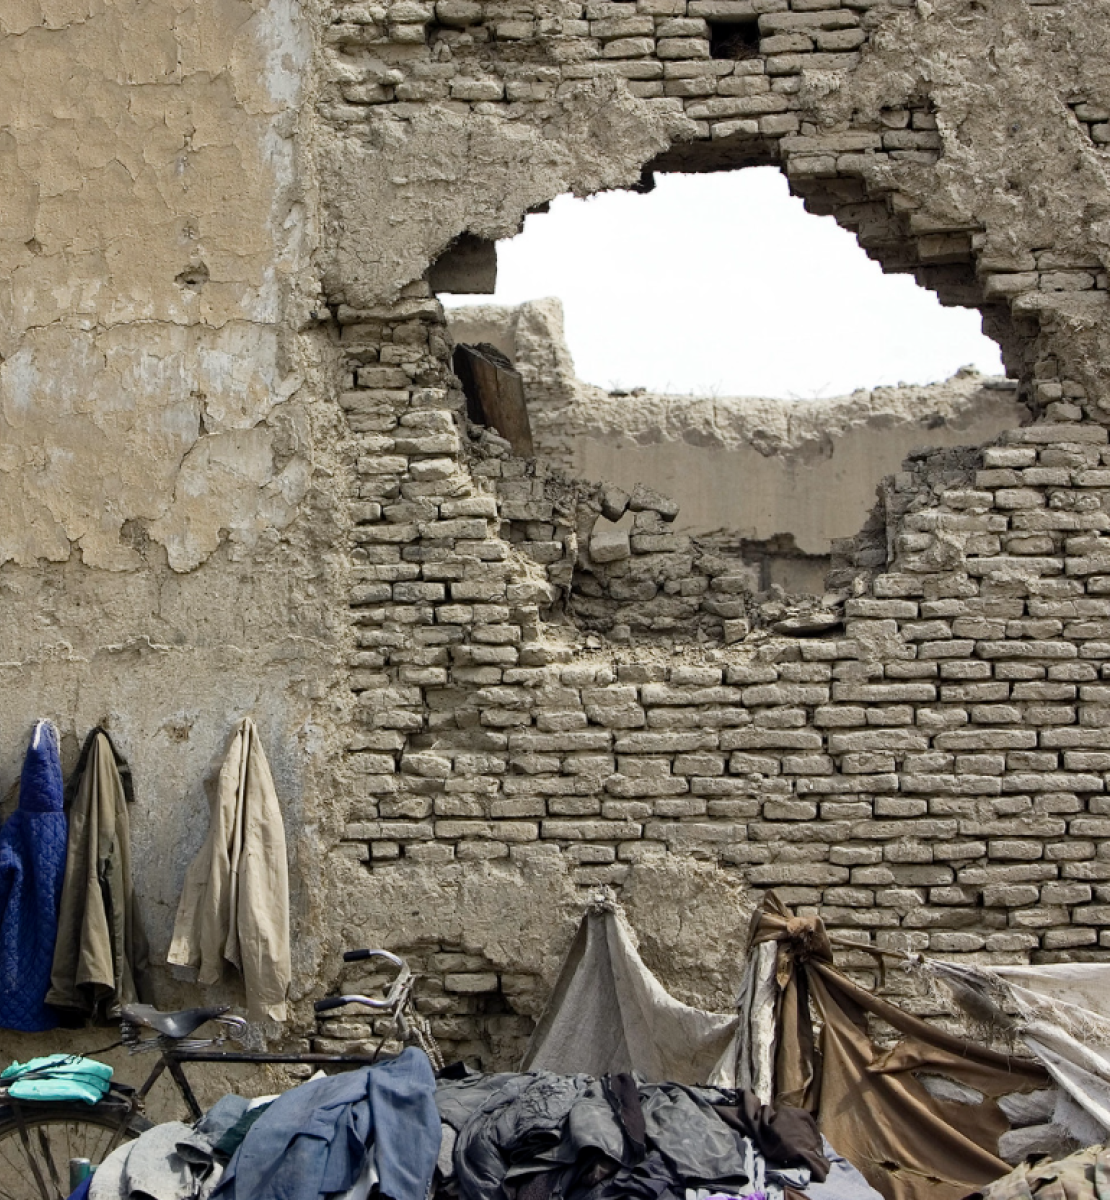 Several coats hanging outside a building with a a large hole to the right of the coats.